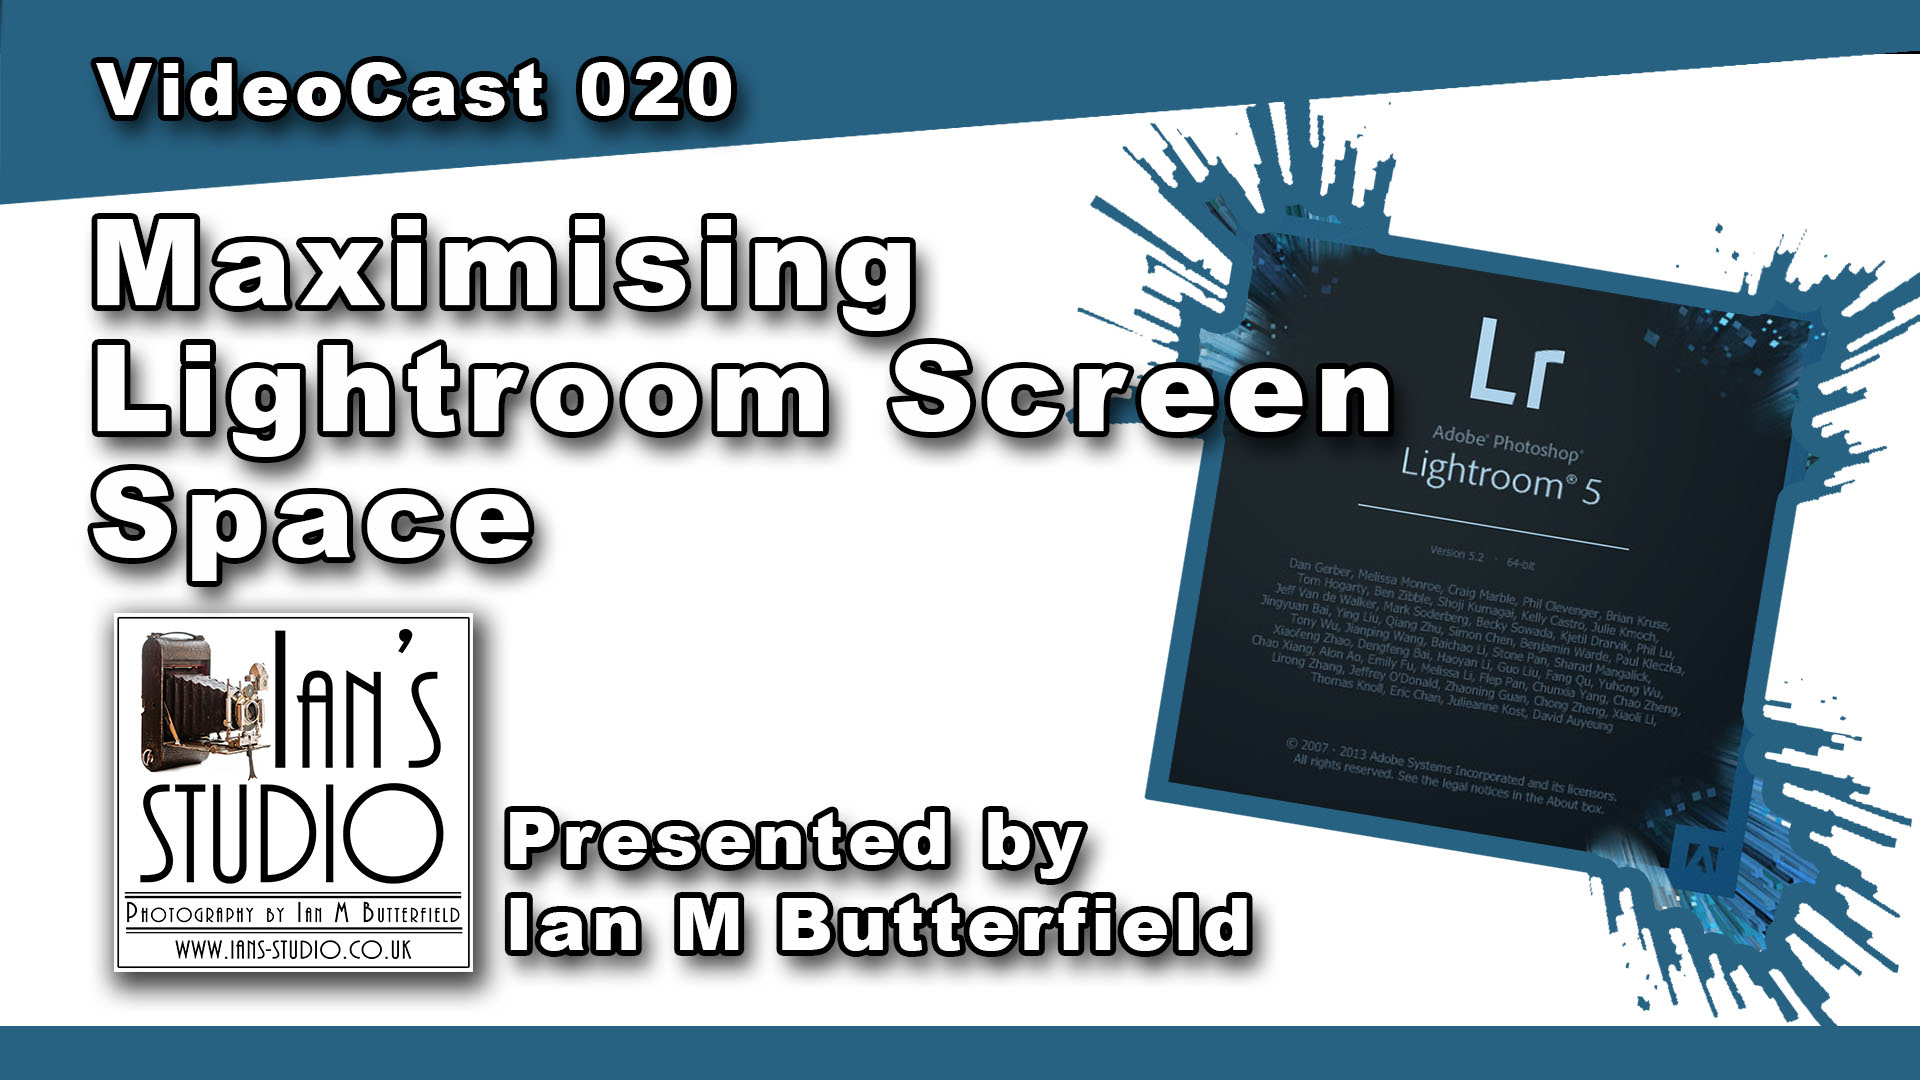 VideoCast 020: Maximising Lightroom Screen Space